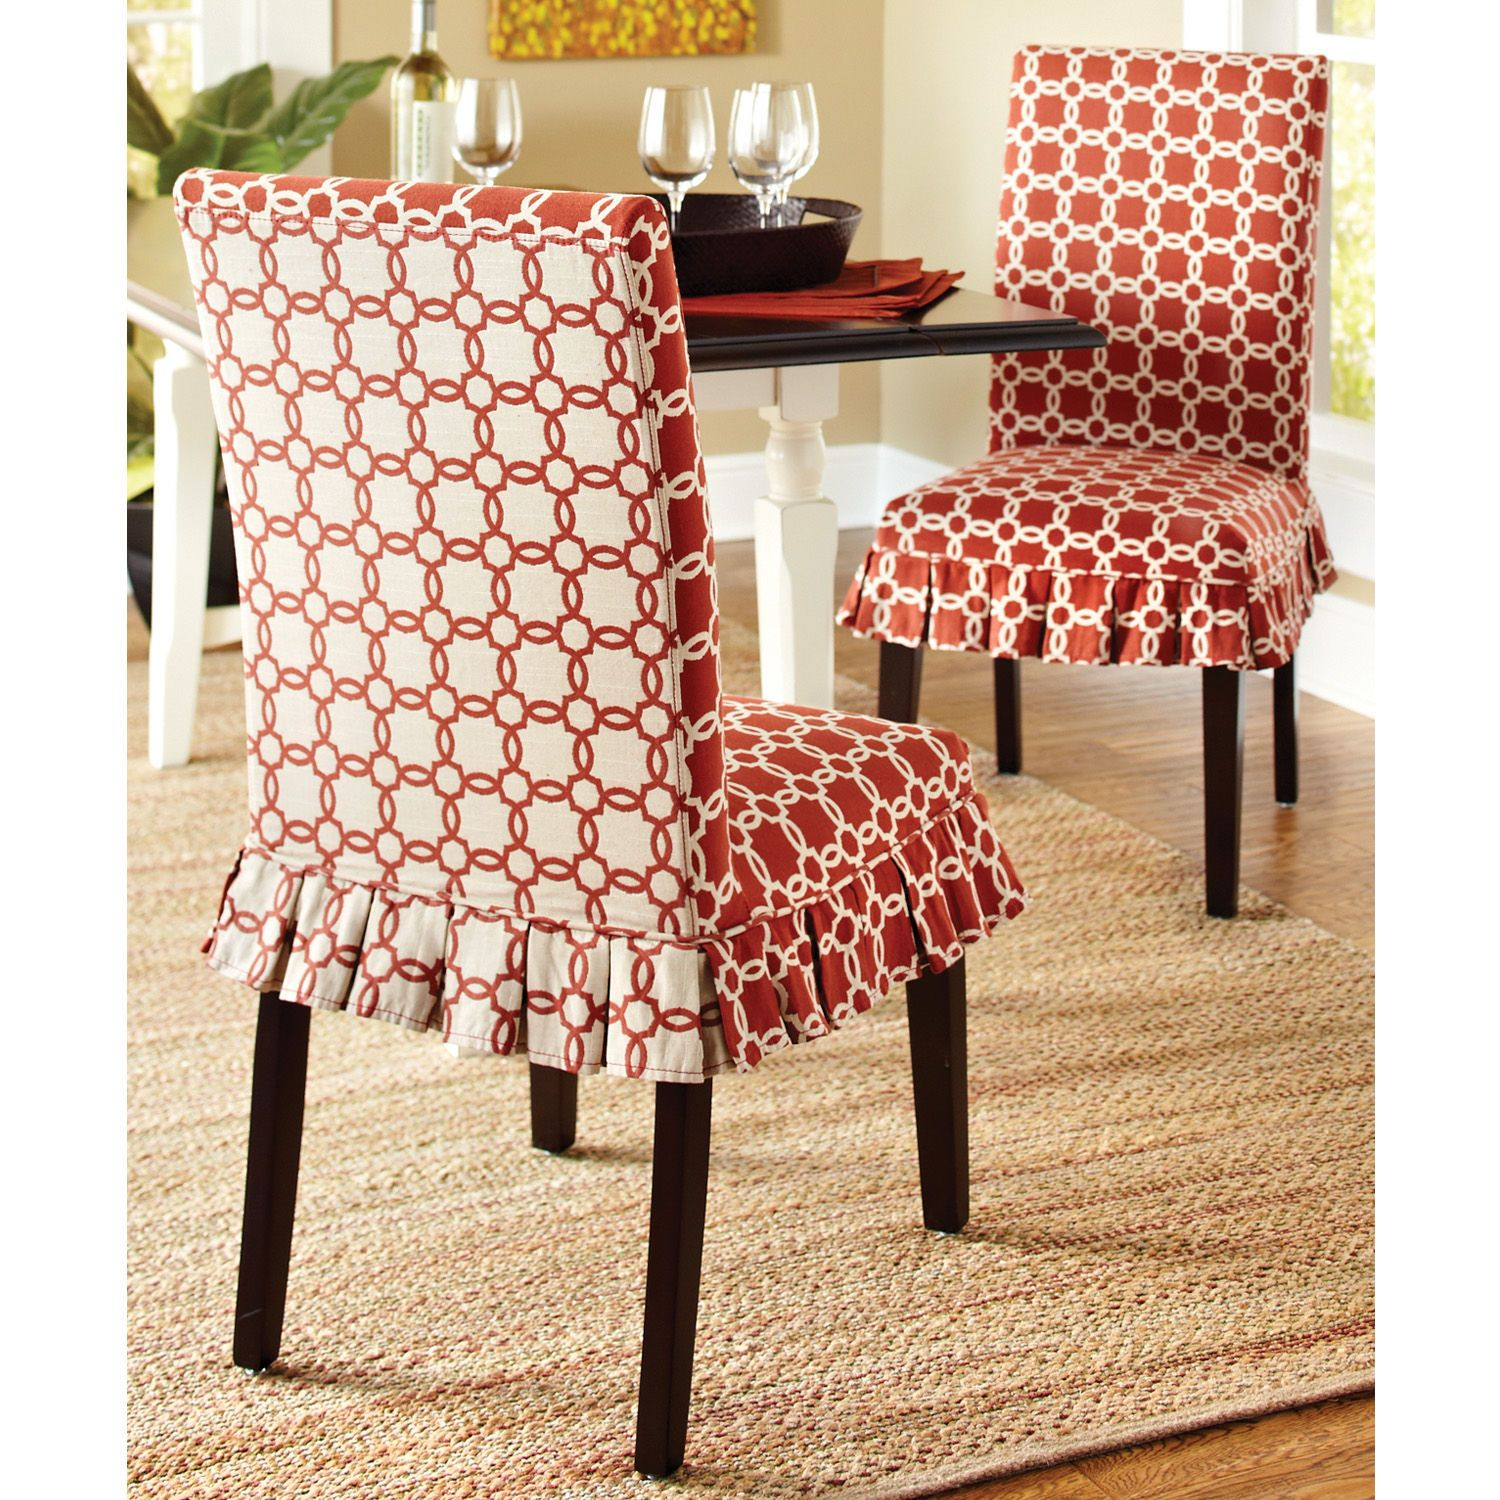 Gingham Dining Room Chair Covers Mid Century Modern Leather Accent How Fun Are These Slipcovers From Pier 1